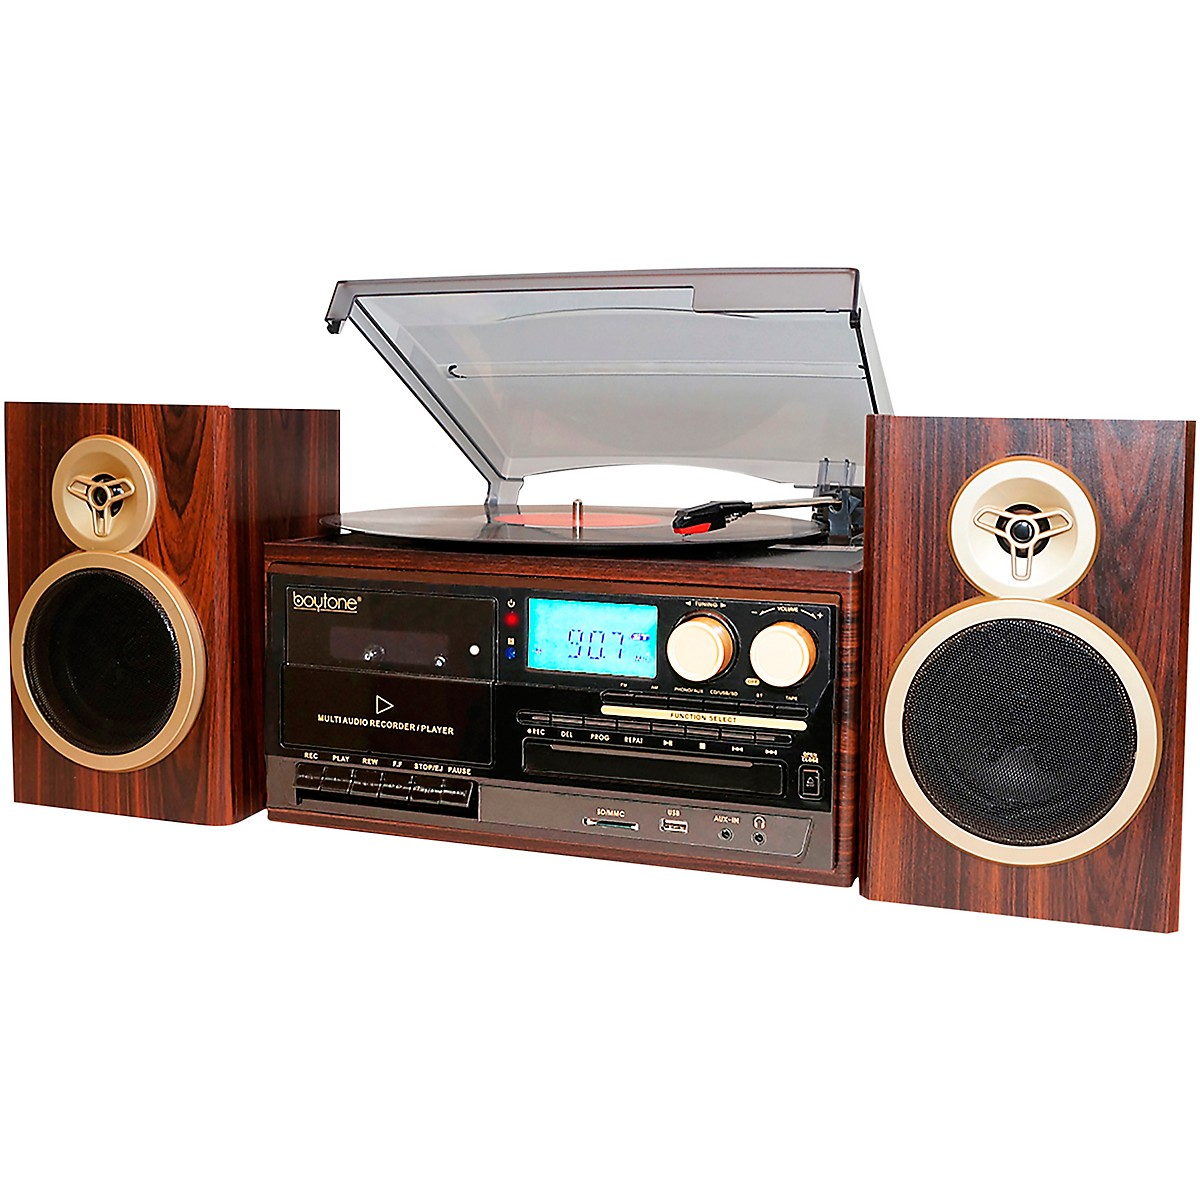 Boytone 8-in-1 Bluetooth Classic Style Record Player